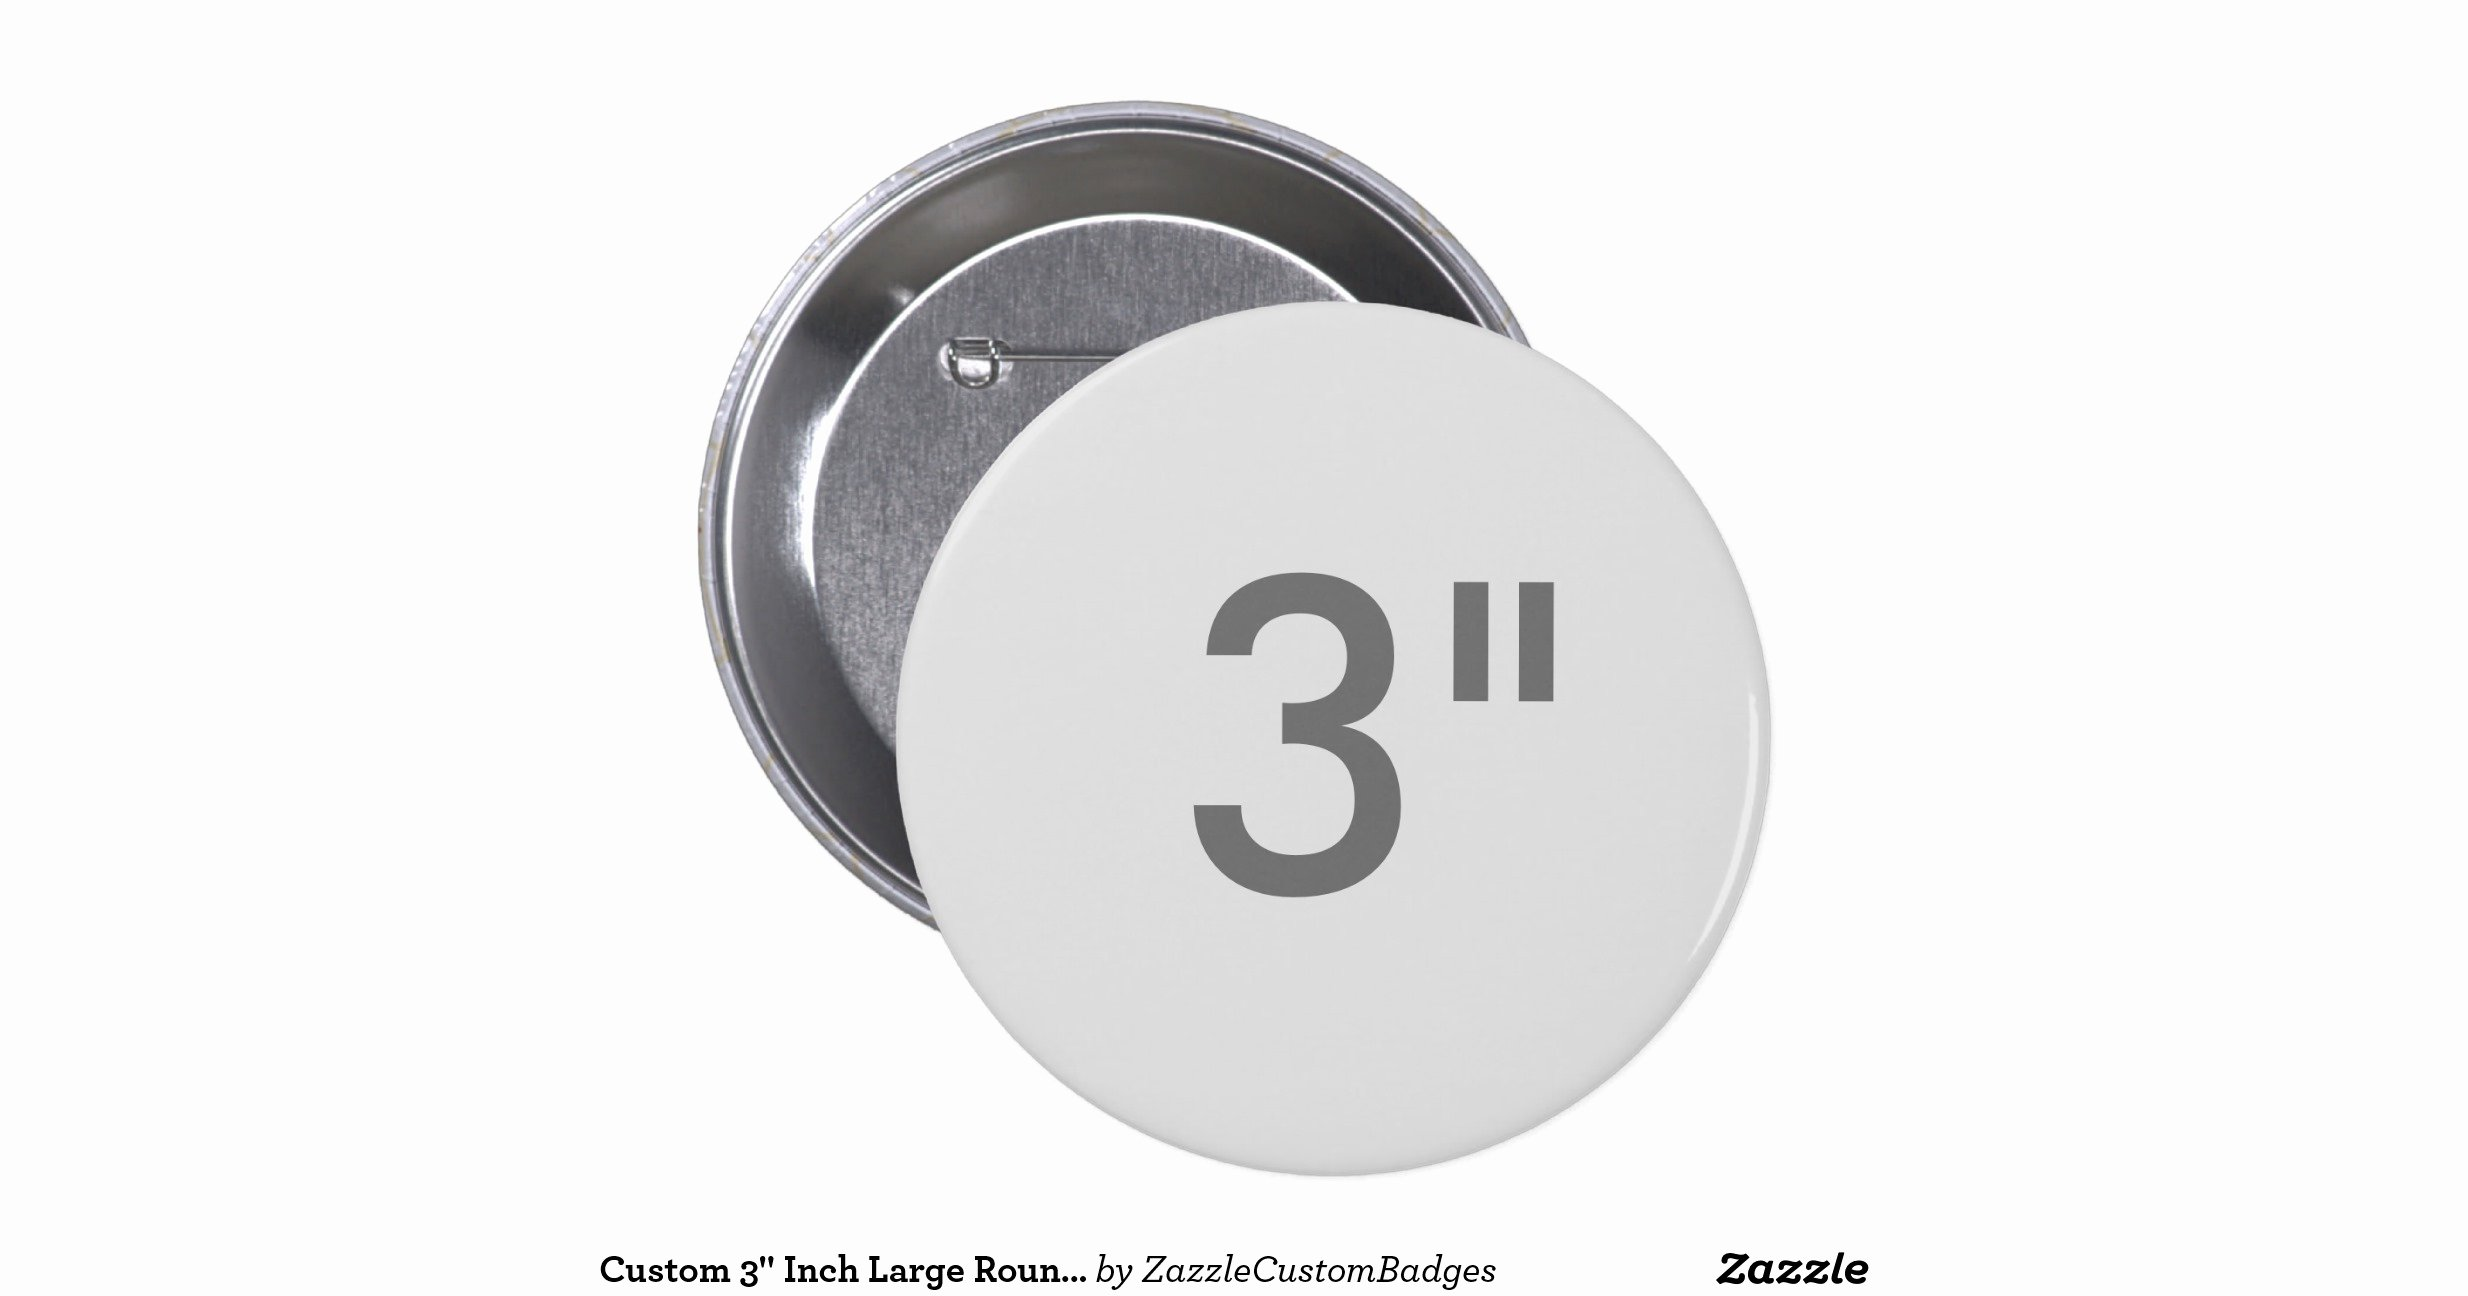 3 Inch Circle Template Printable Elegant Custom 3 Inch Large Round Badge Blank Template 3 Inch